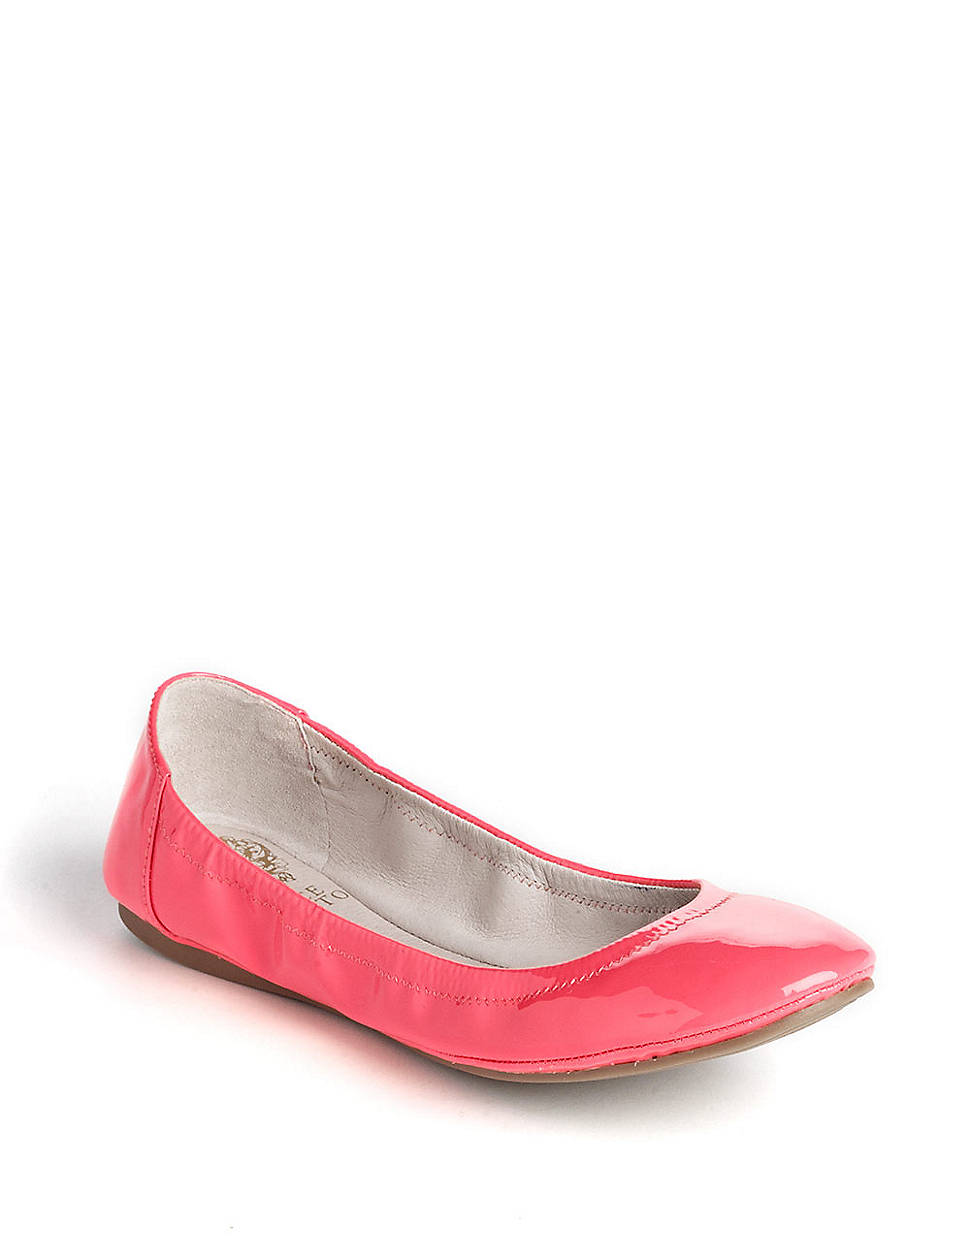 Vince Camuto Ellen Patent Leather Flats In Pink Coral Lyst